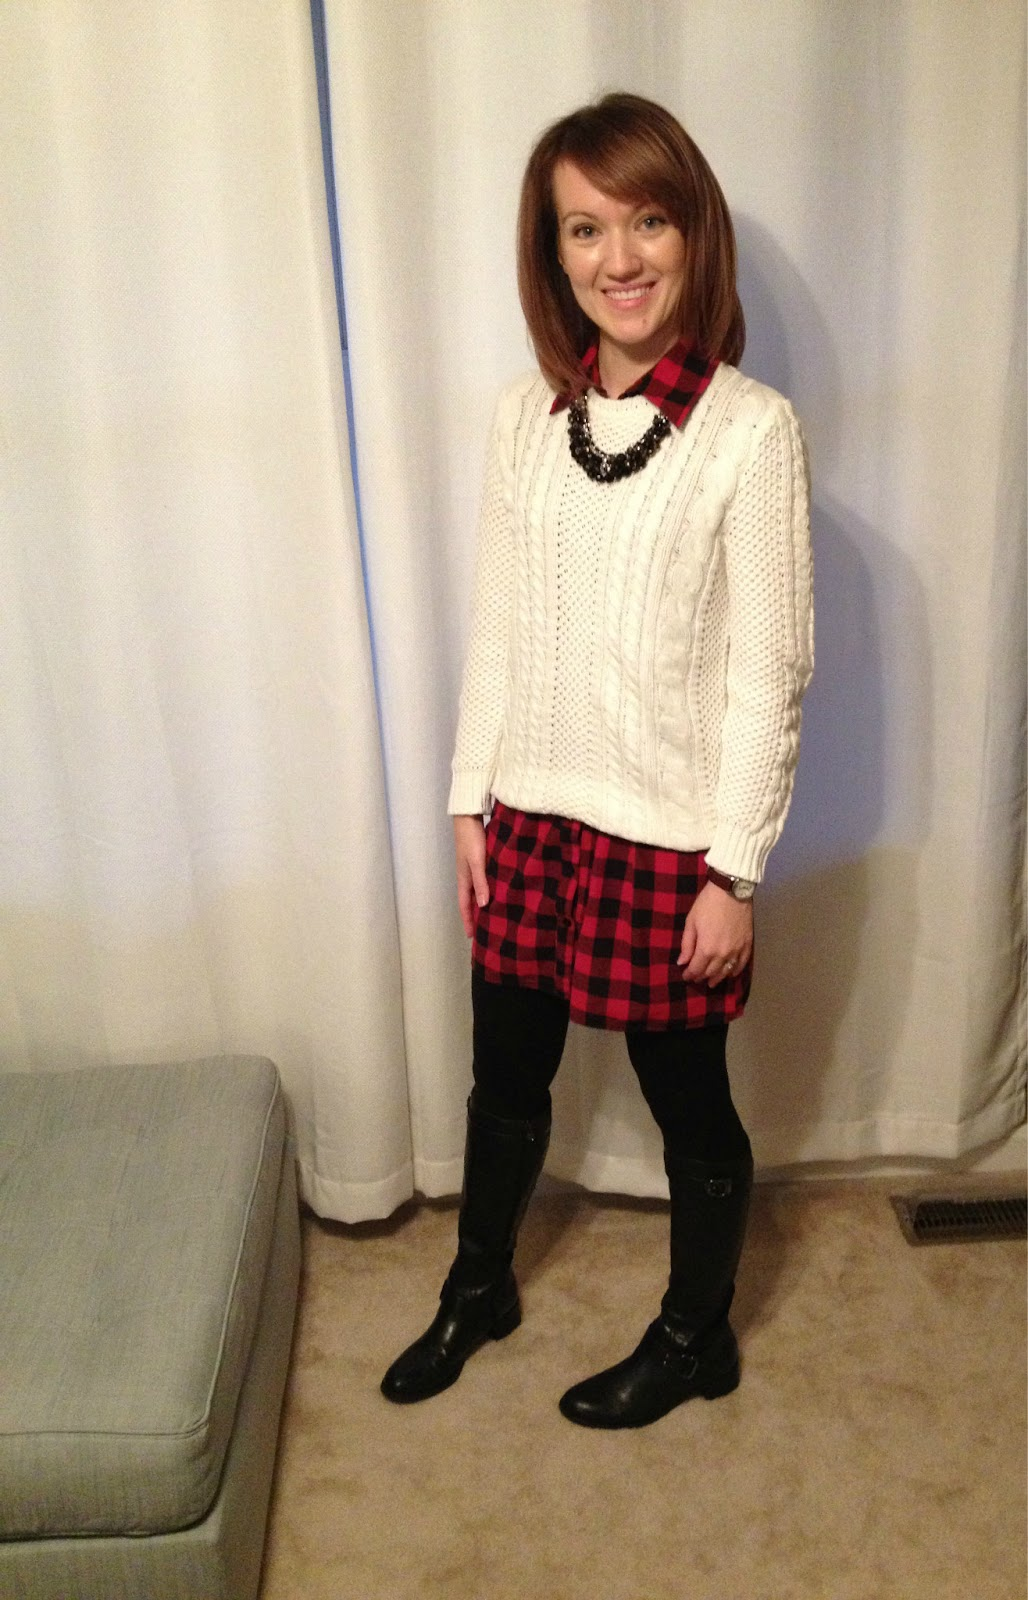 A Little Bit Of Wowe Sweater Over Dress